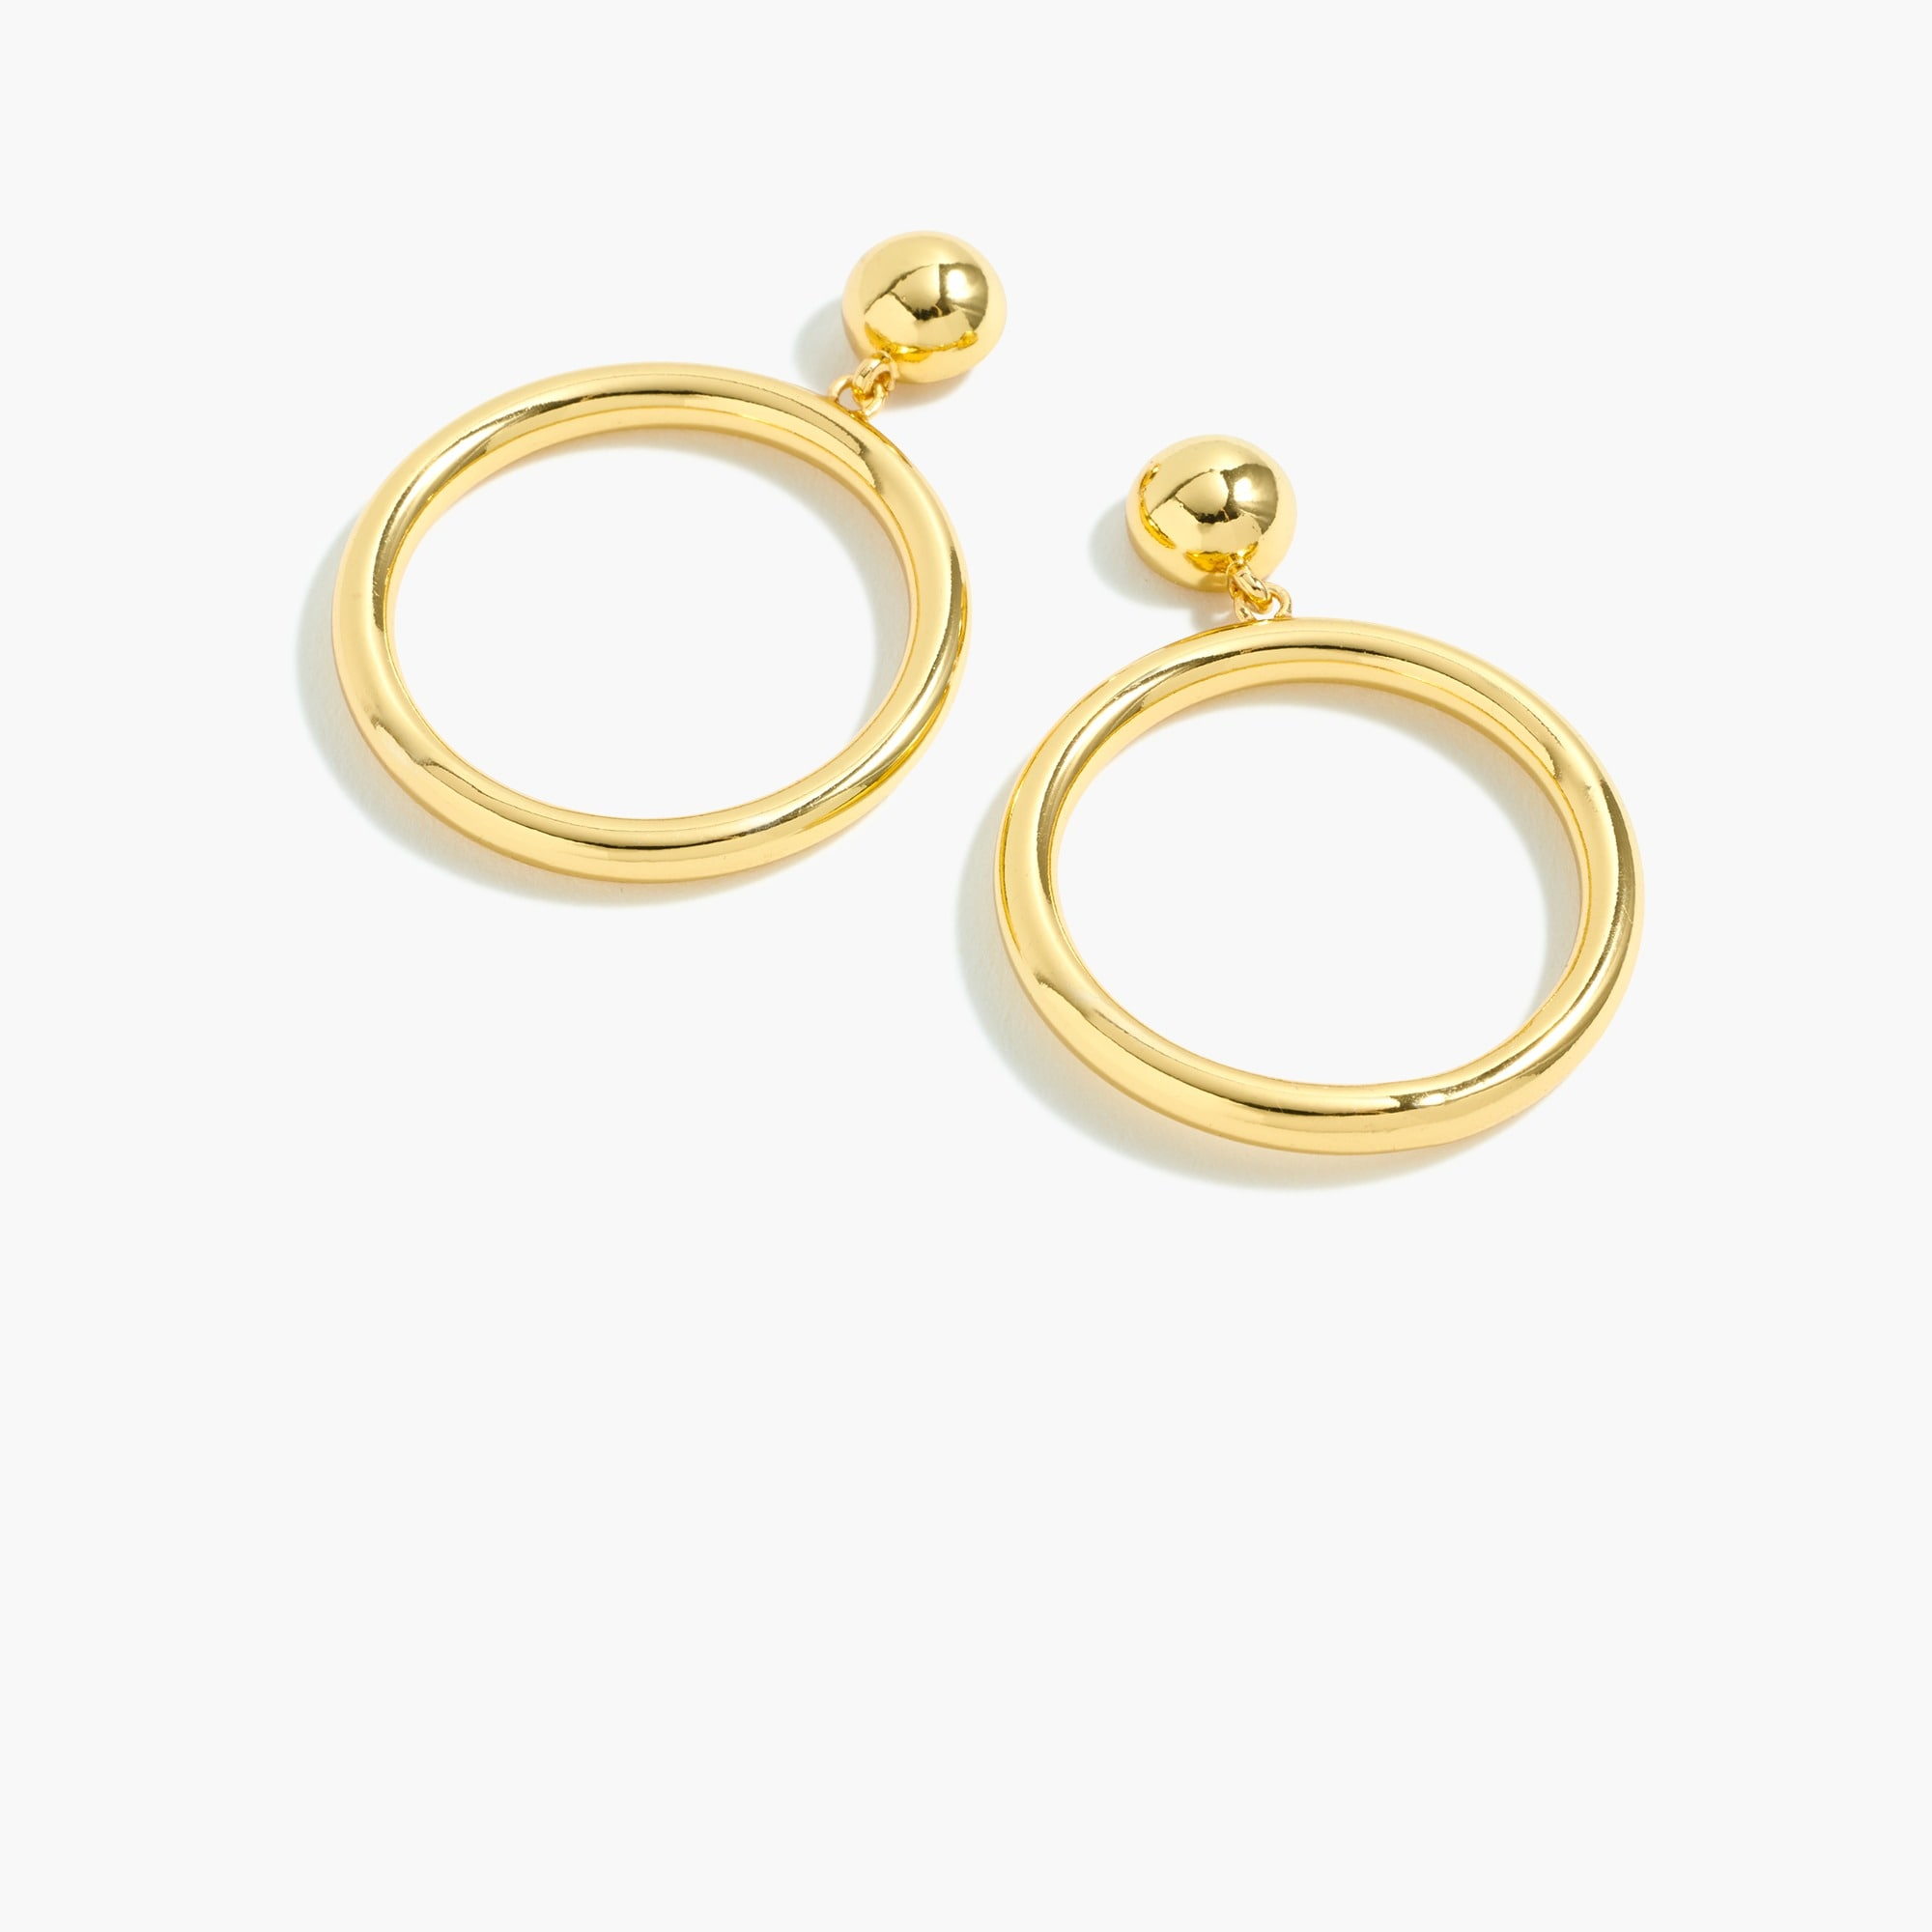 Gold circle earrings women new arrivals c